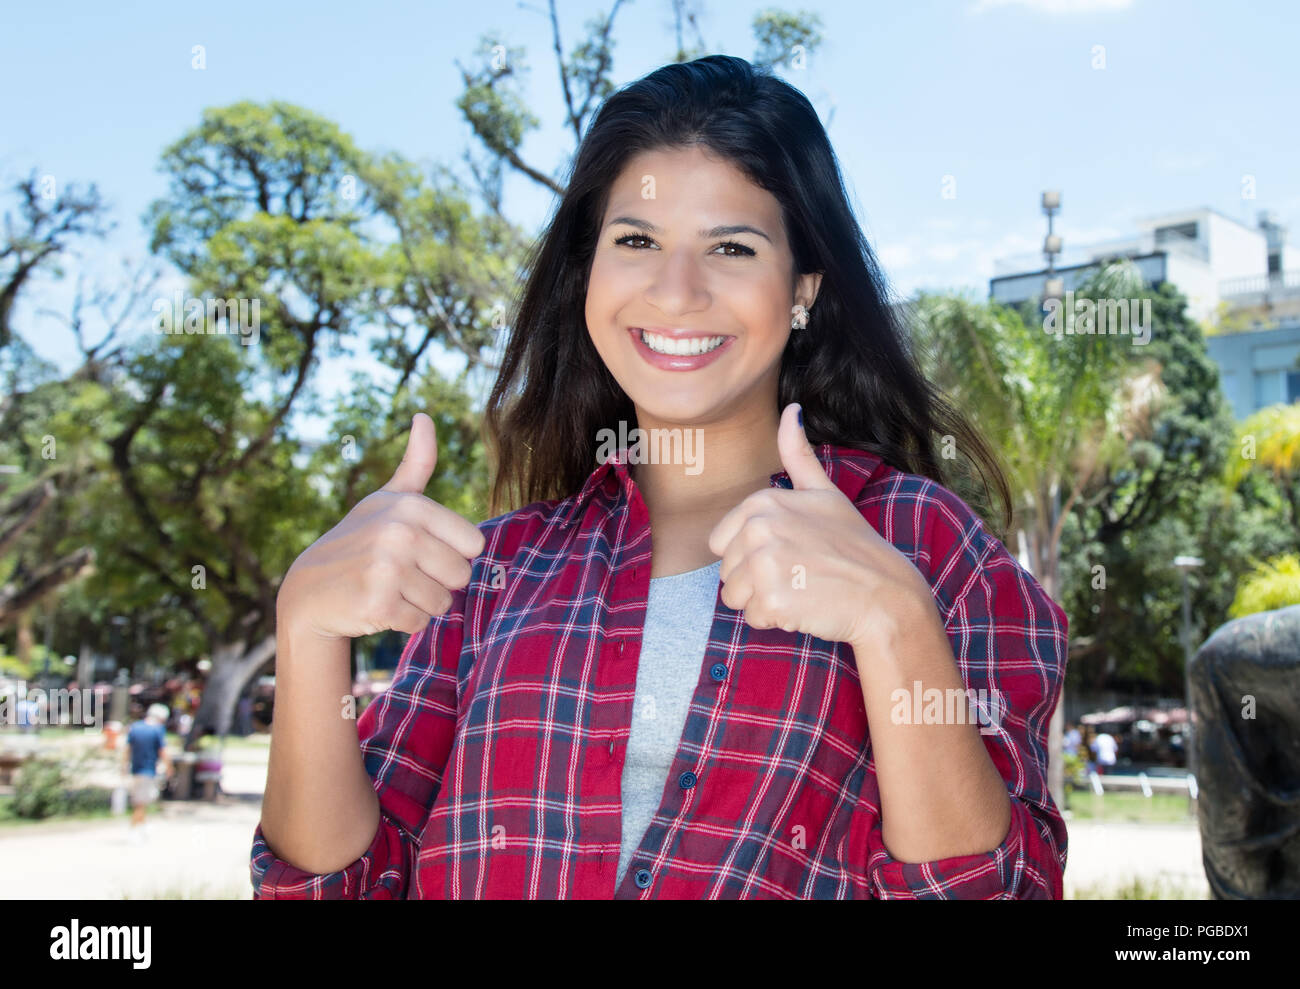 Caucasian woman with hipster shirt showing both thumbs outdoors in summer in city Stock Photo